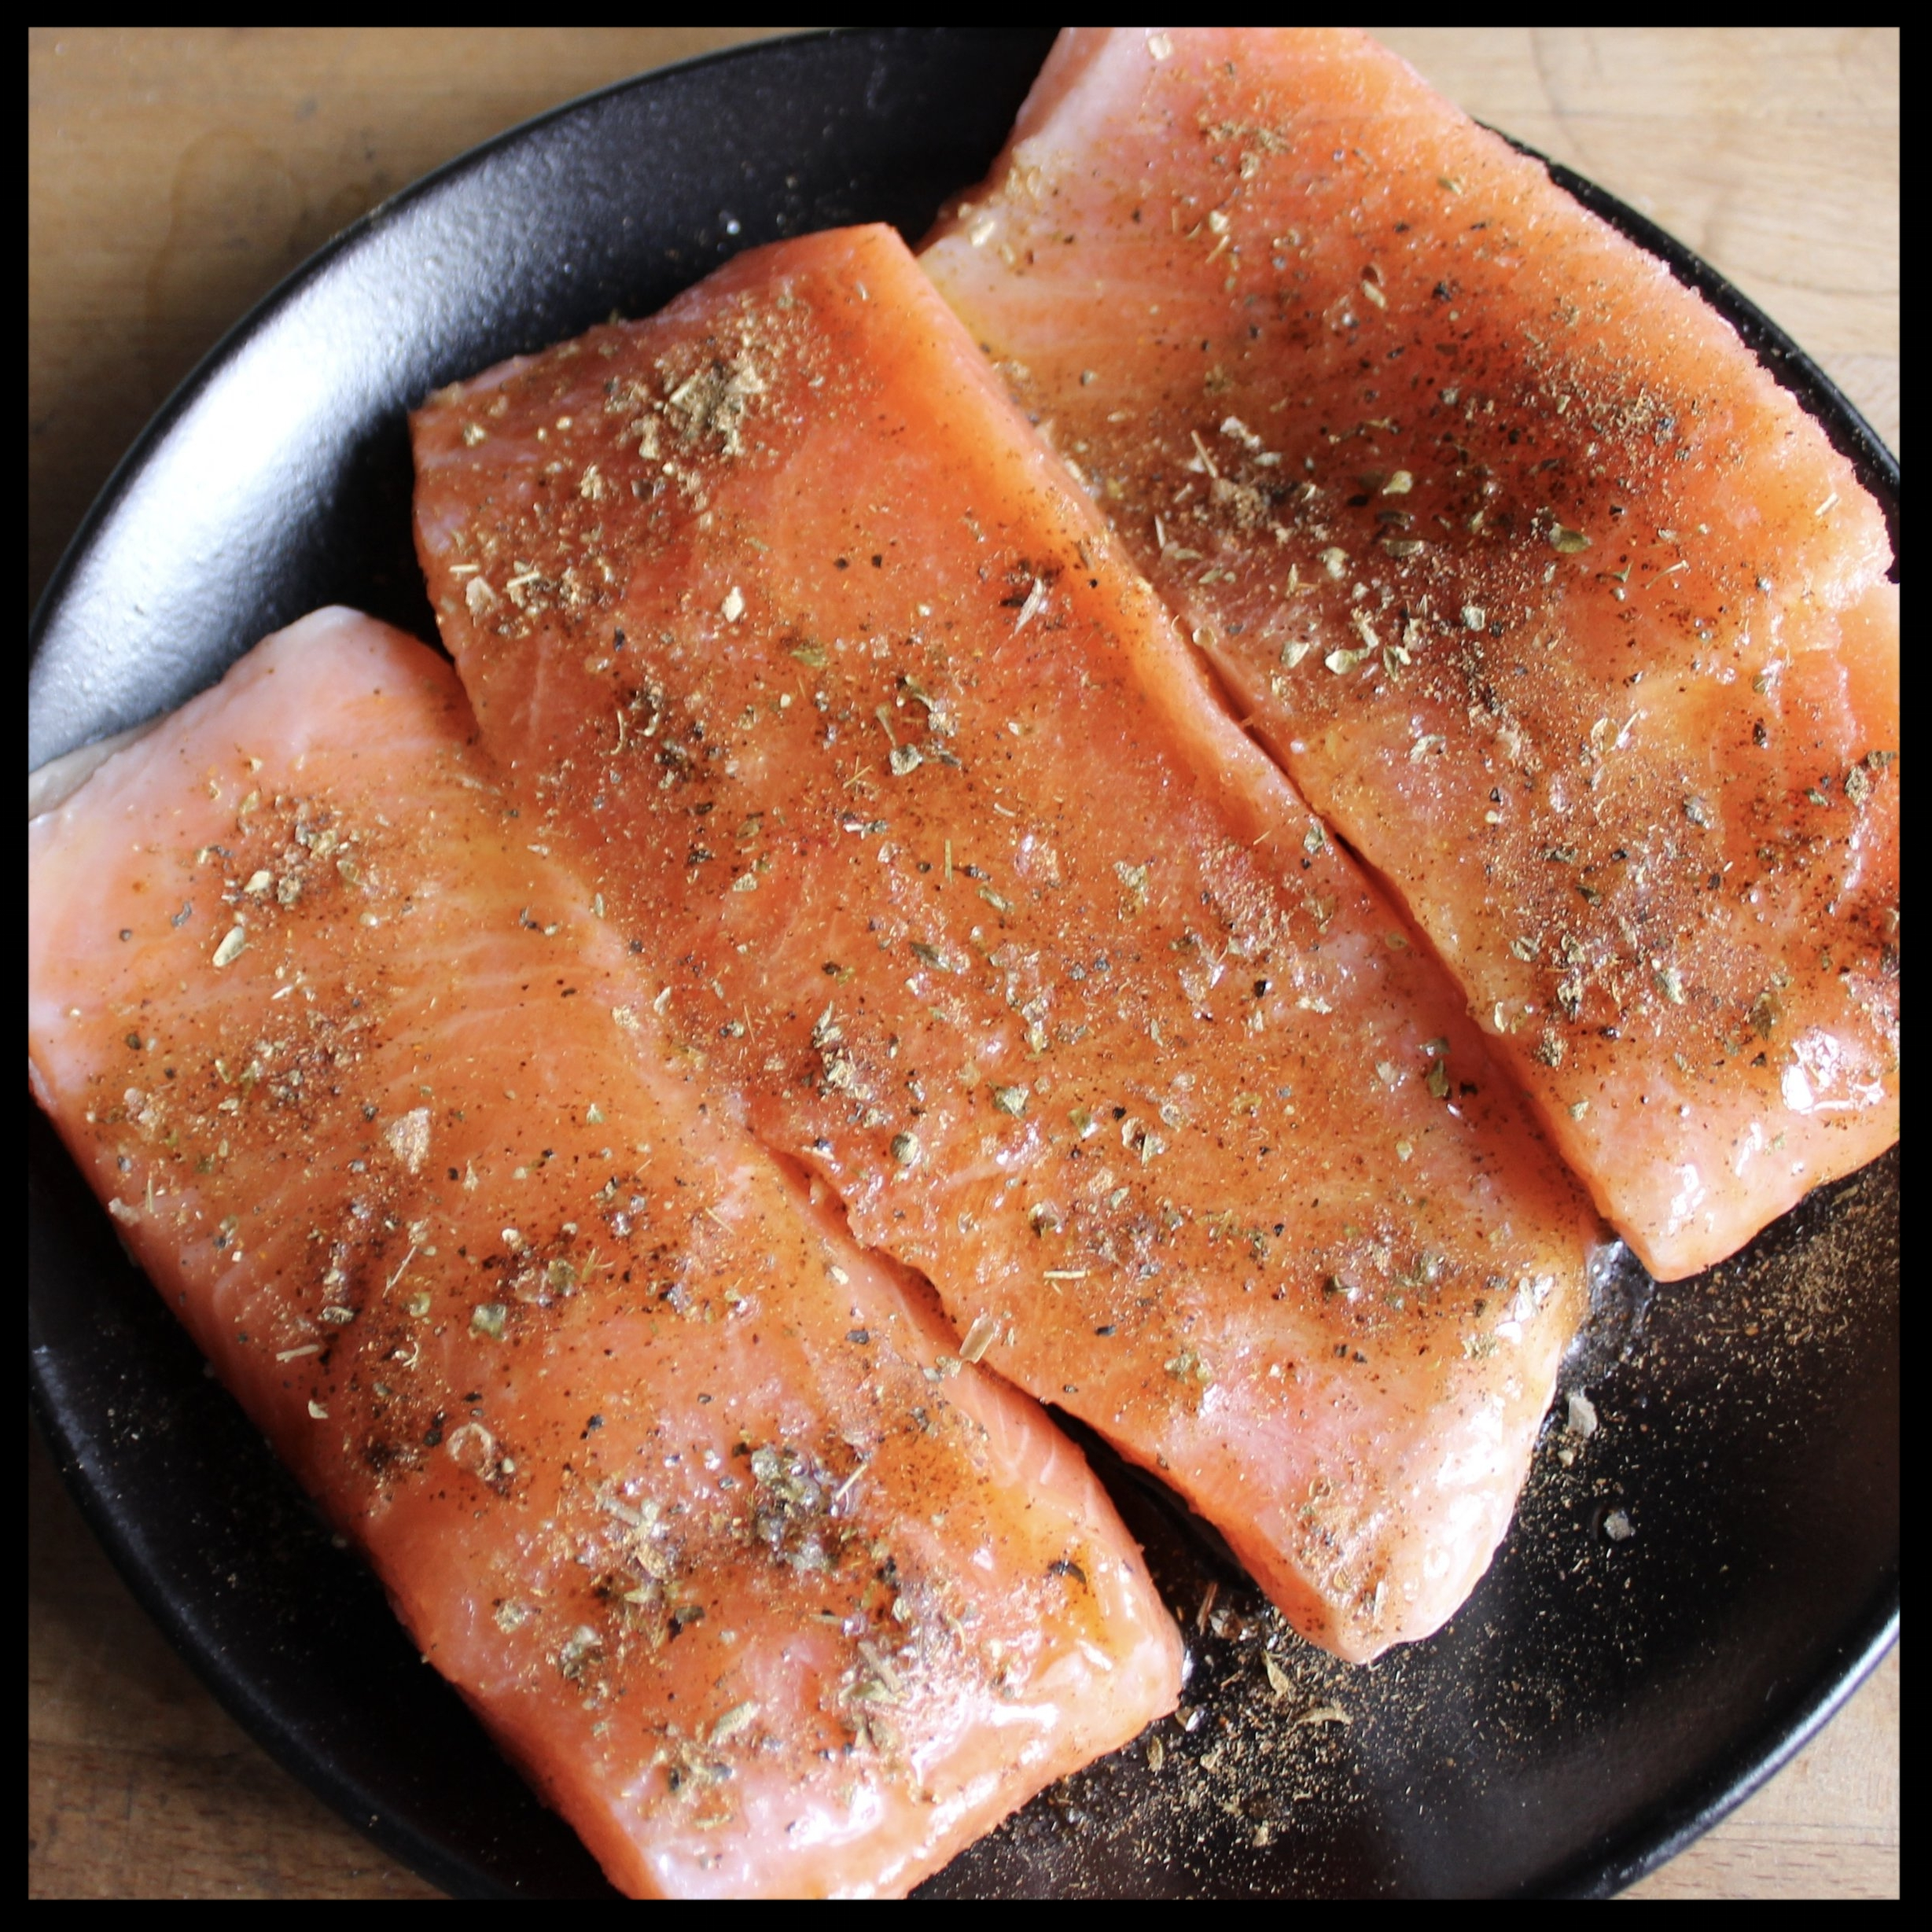 INSTRUCTIONS:   1. Preheat your oven to 400 degrees  2. If your salmon has been frozen and defrosted (like mine was) pat both sides dry with a paper towel.  3. Lay on a plate, skin side down, and season liberally with your LATIN SPICE RUB and drizzle with olive oil  4. Return salmon to the fridge without covering.